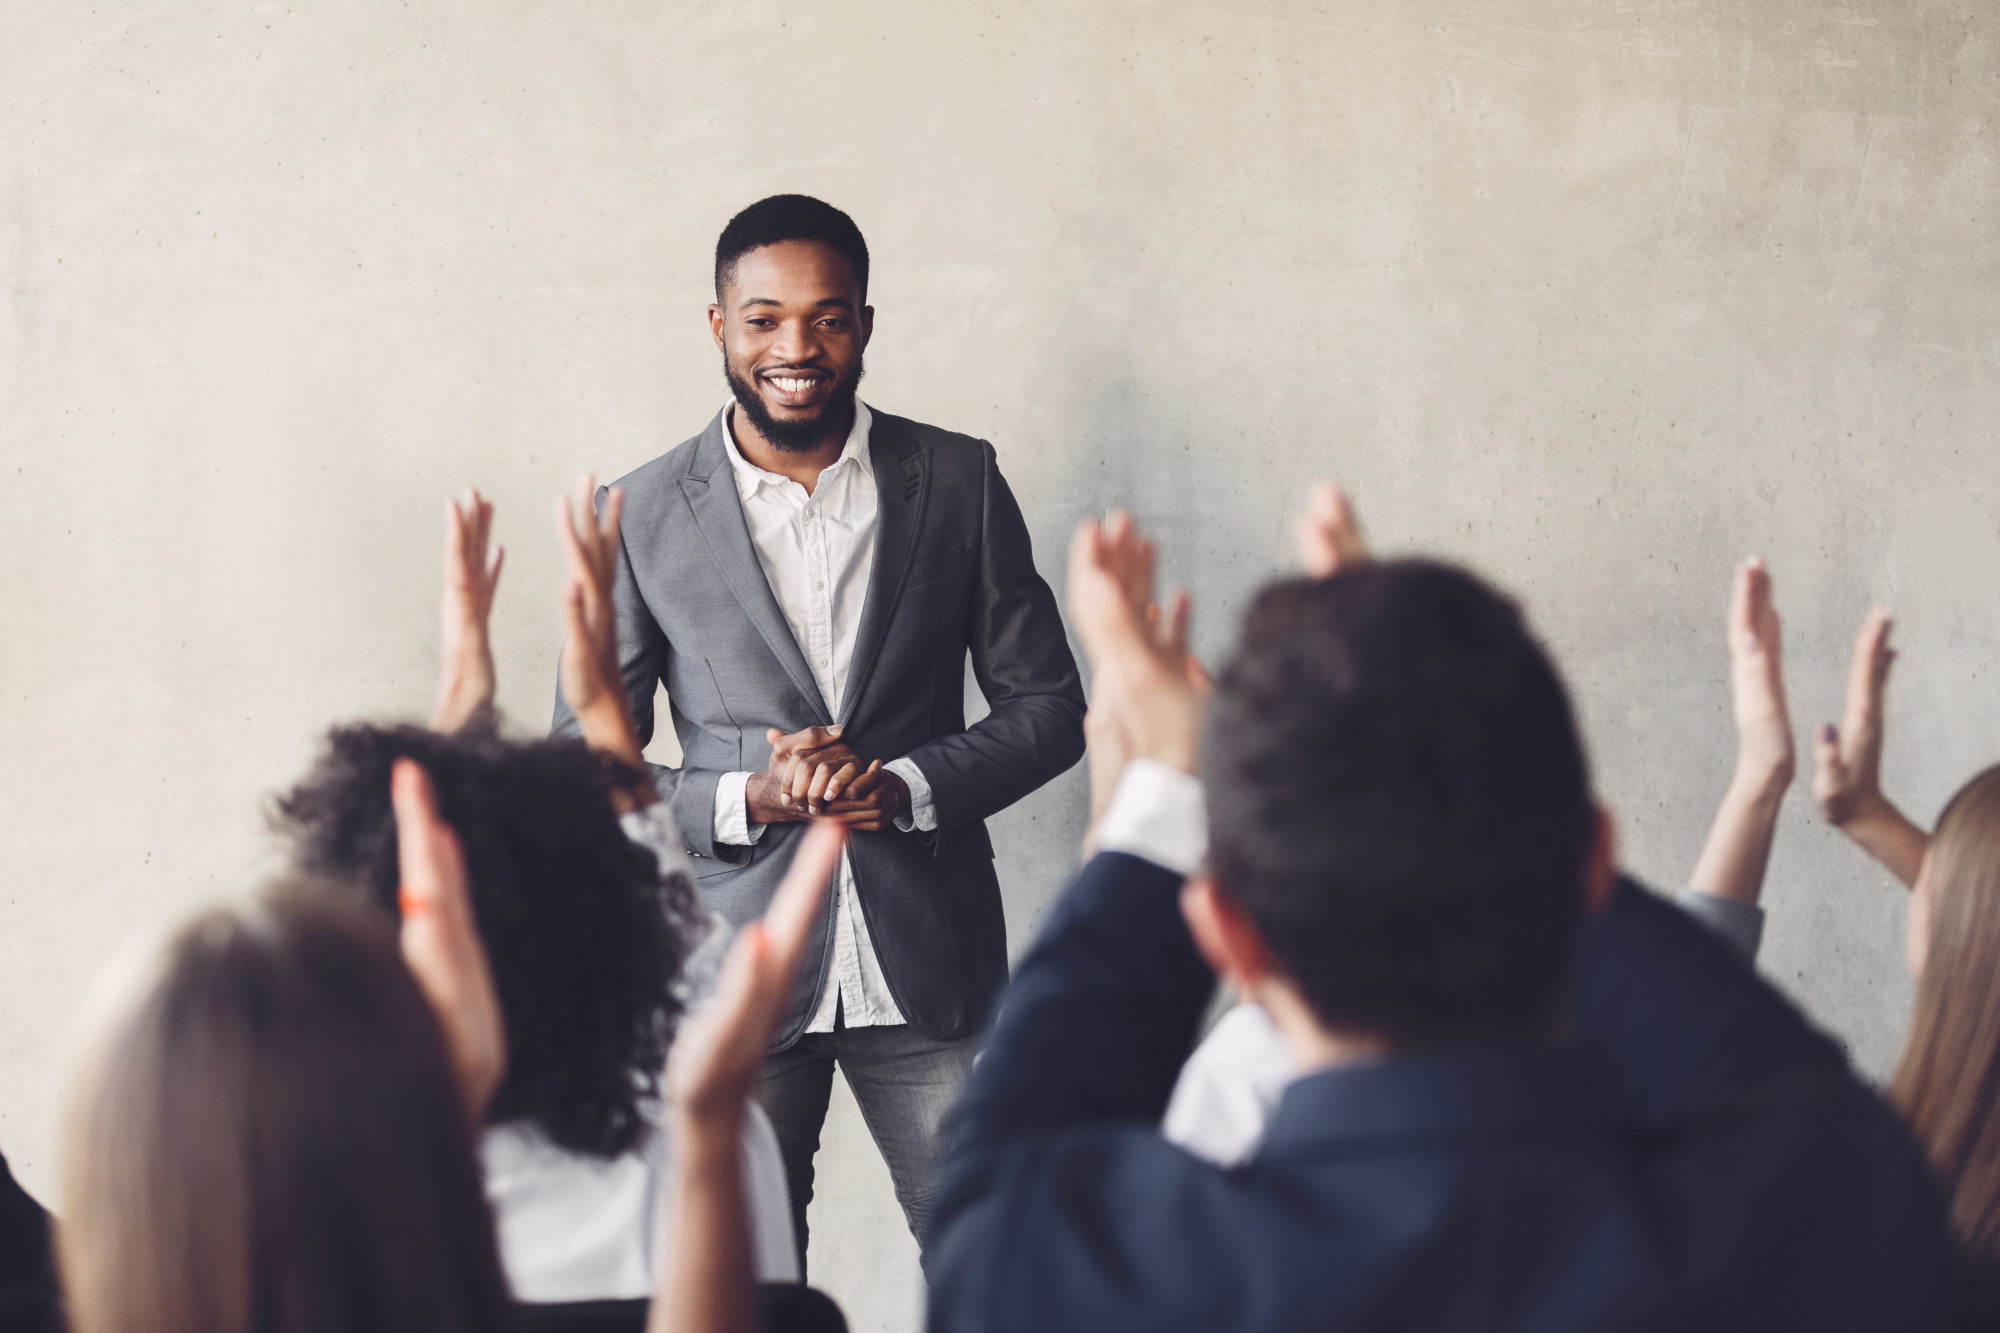 How to Improve Leadership Skills: Tips That Can Stay With You for Life